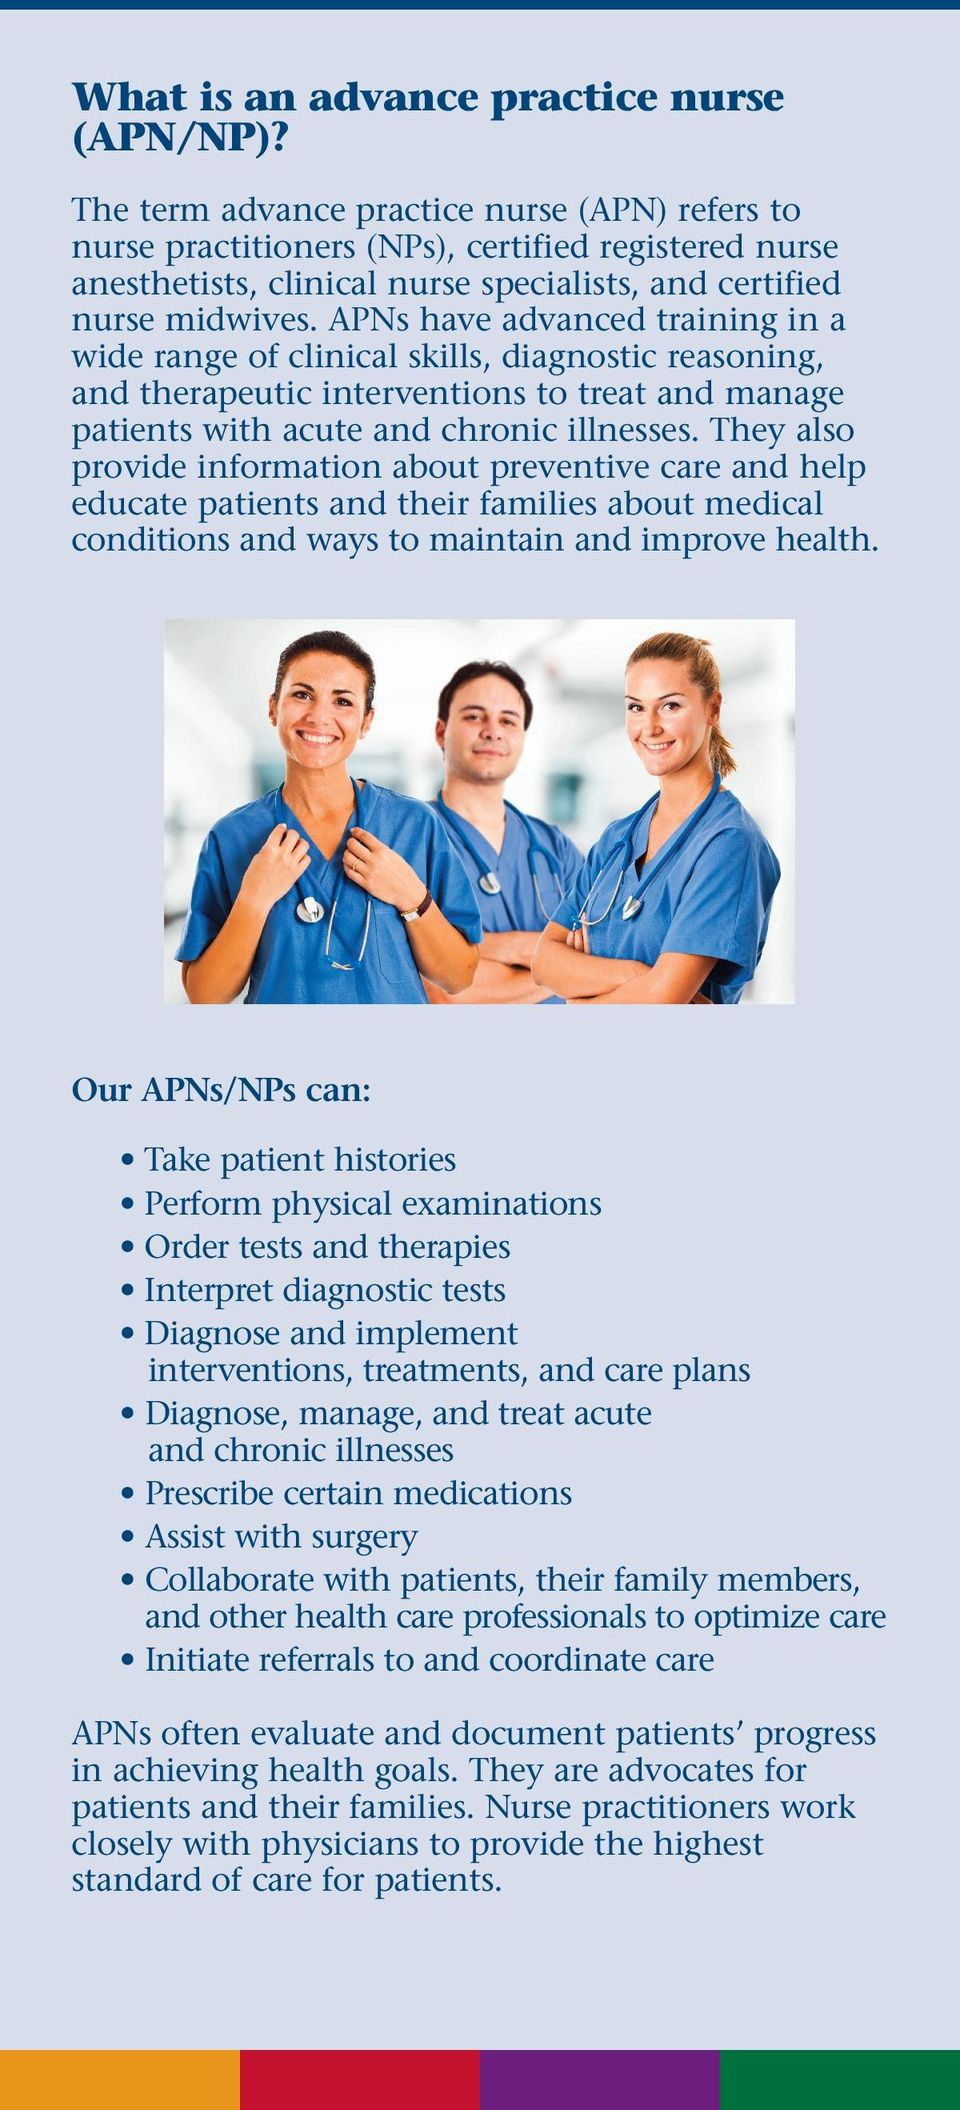 APNs have advanced training in a wide range of clinical skills, diagnostic reasoning, and therapeutic interventions to treat and manage patients with acute and chronic illnesses.